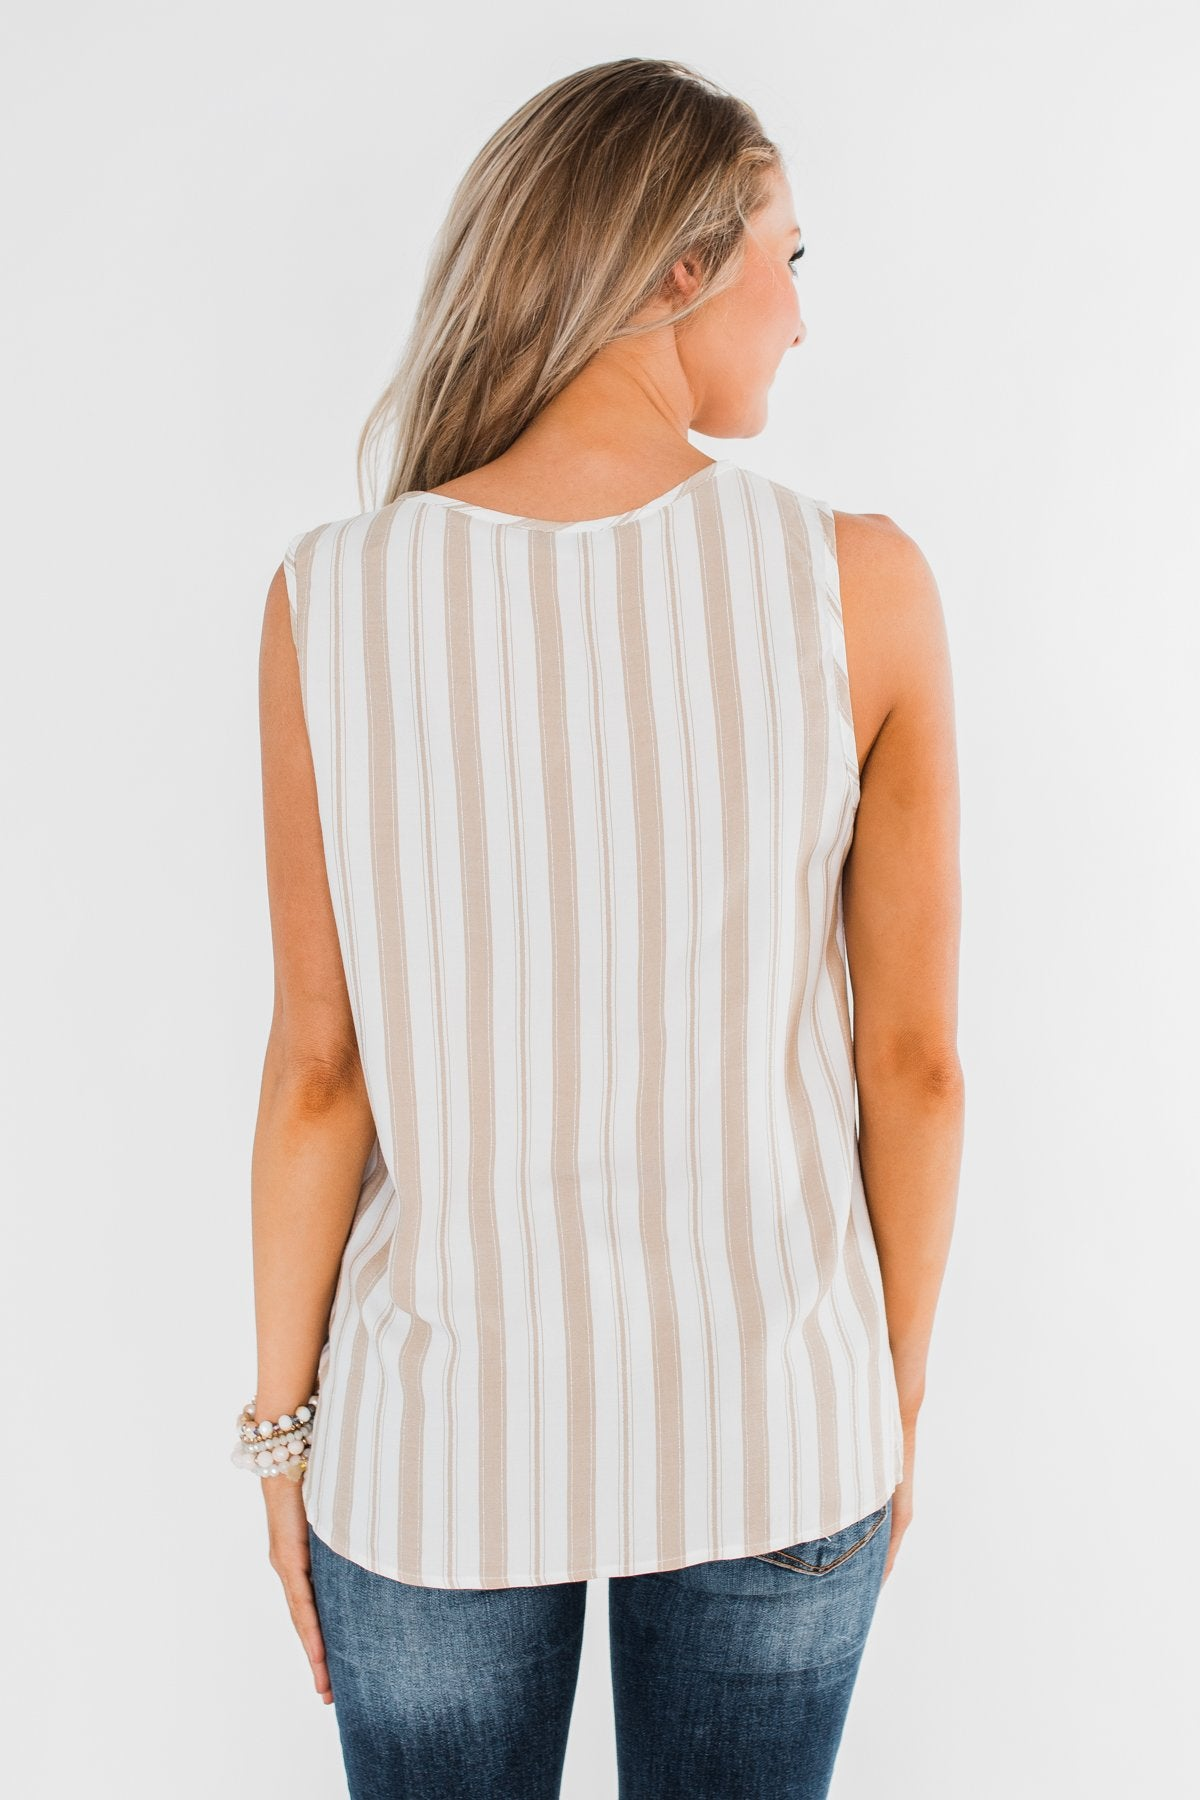 Twinkle In Your Eye Striped Tank Top- Beige